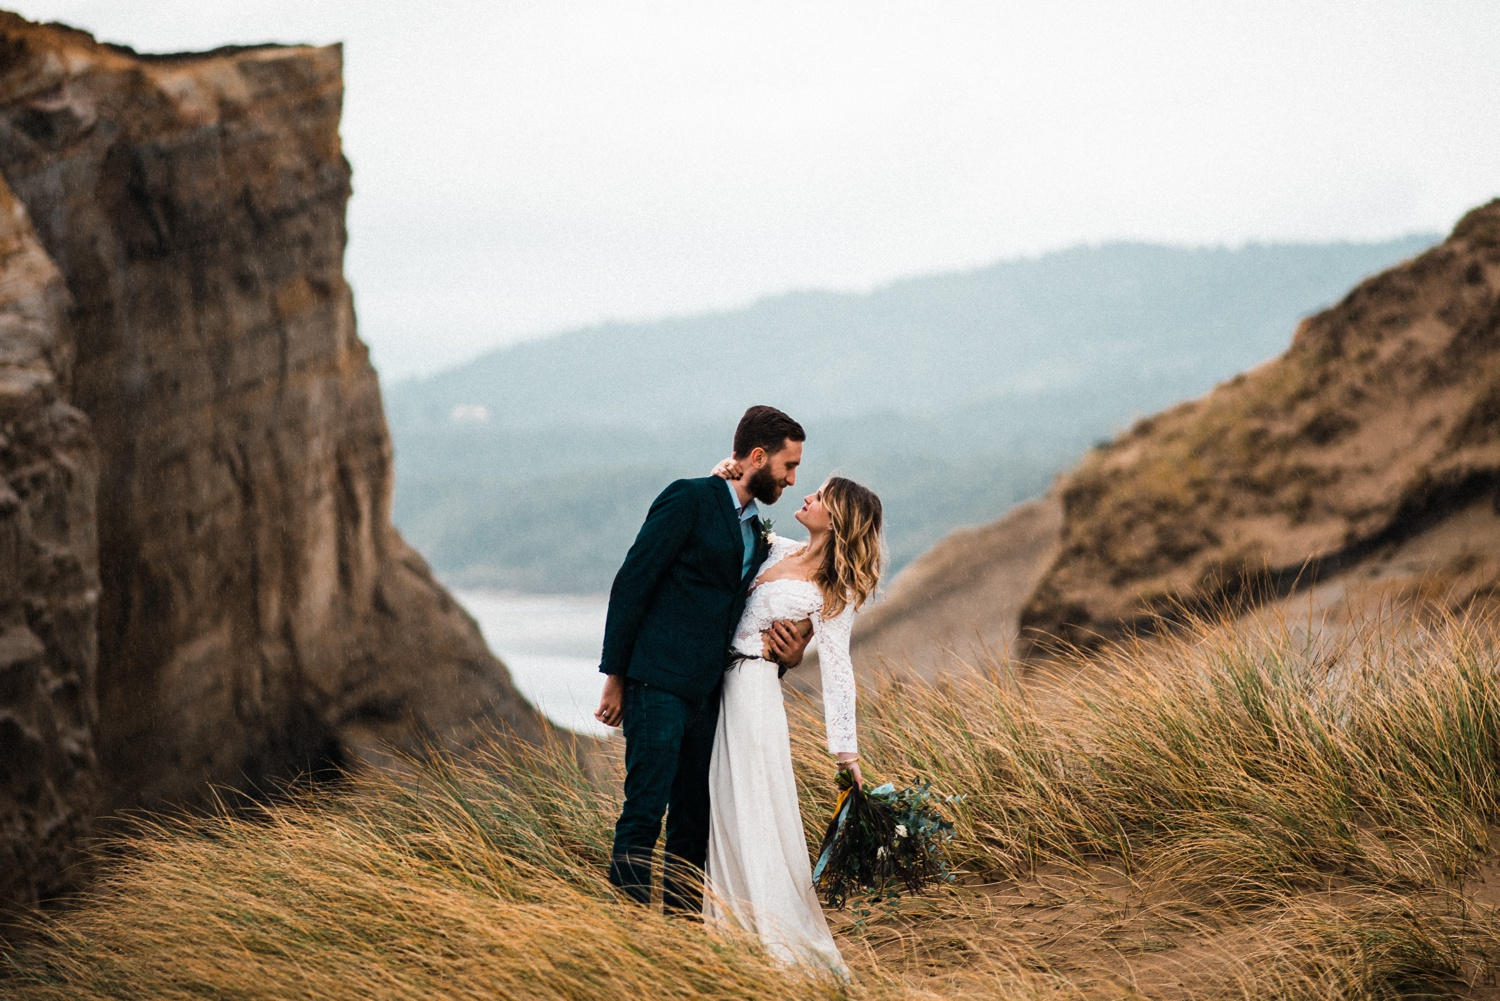 Oregon_Coast_Elopement_Wedding_The_Foxes_Photography_099.jpg